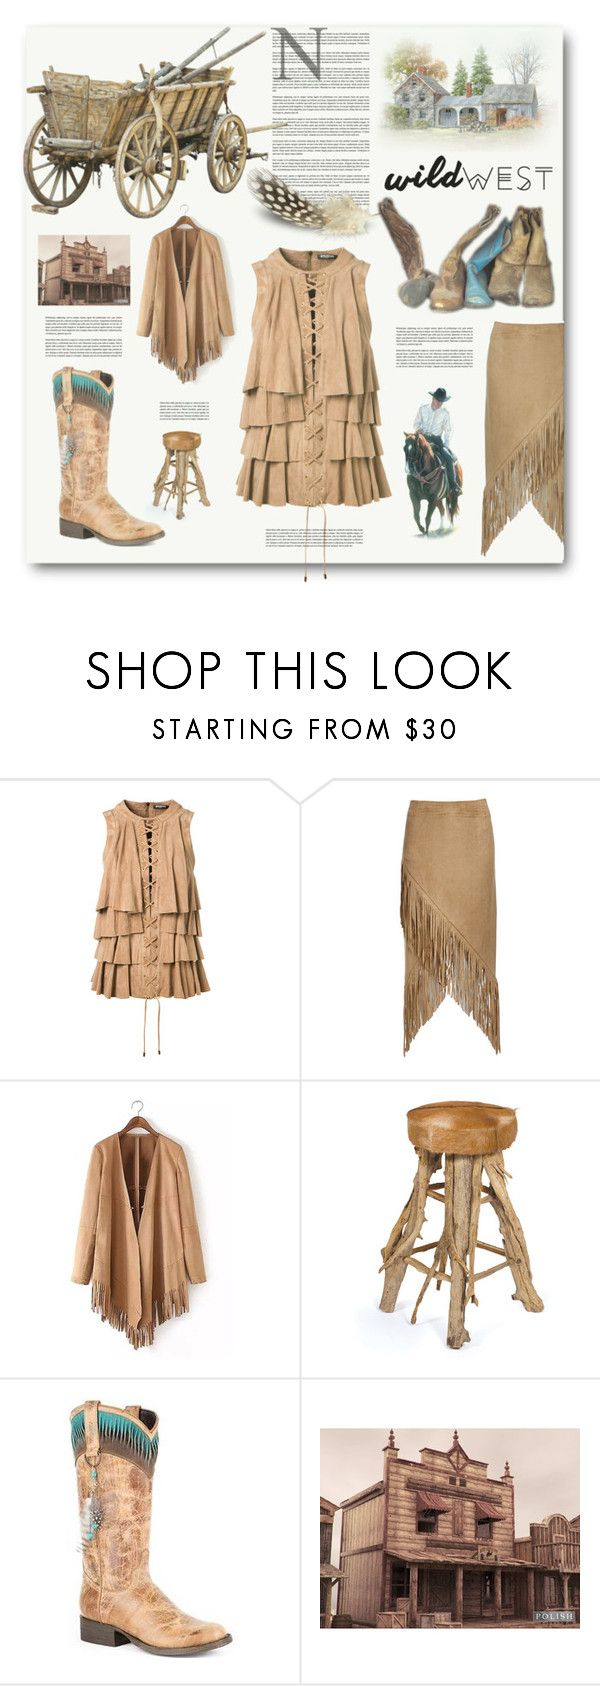 """WILD WEST"" by jana-masarovicova ❤ liked on Polyvore featuring Balmain, Nightwalker, GO Home Ltd., Stetson, fashionset and wildwest"